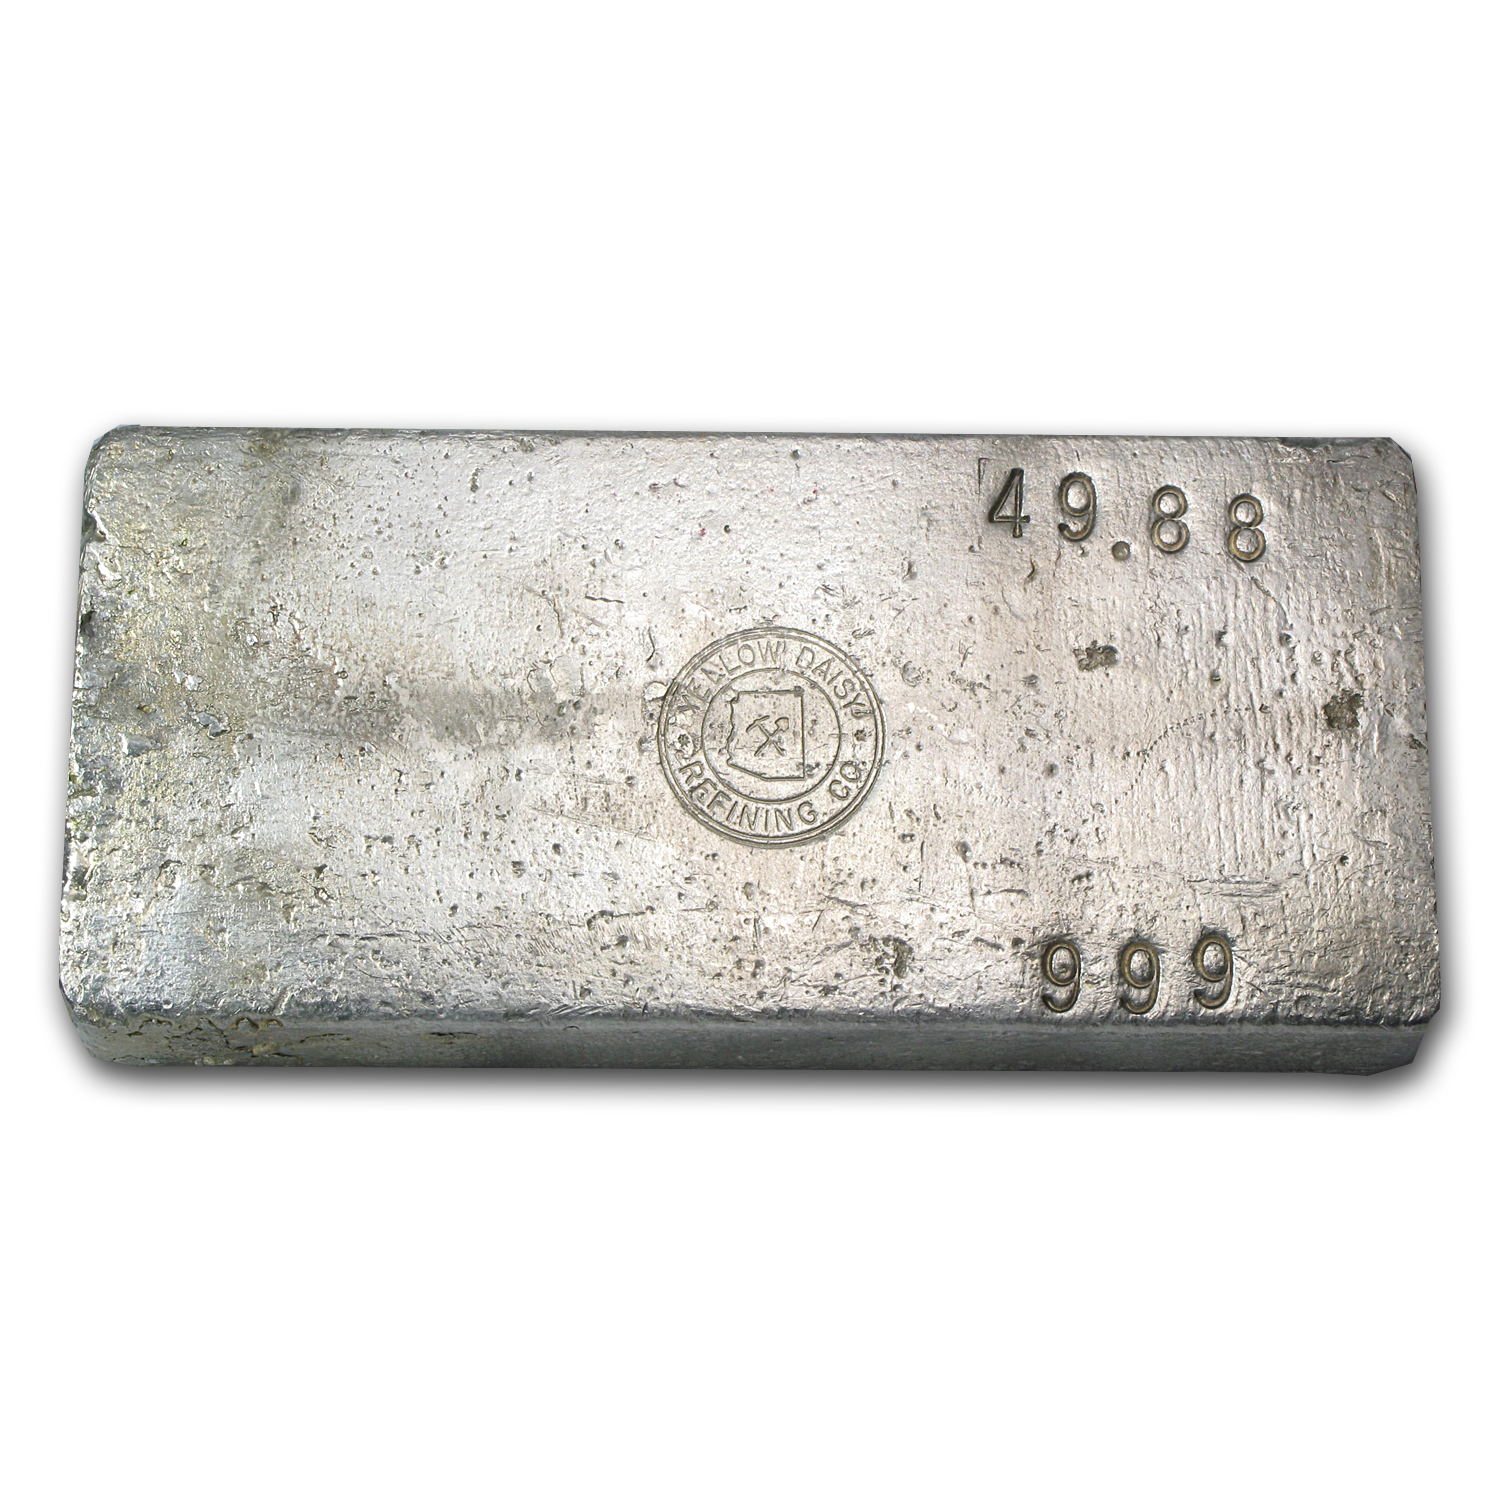 49.88 oz Silver Bars - Yellow Daisy Refining Co.